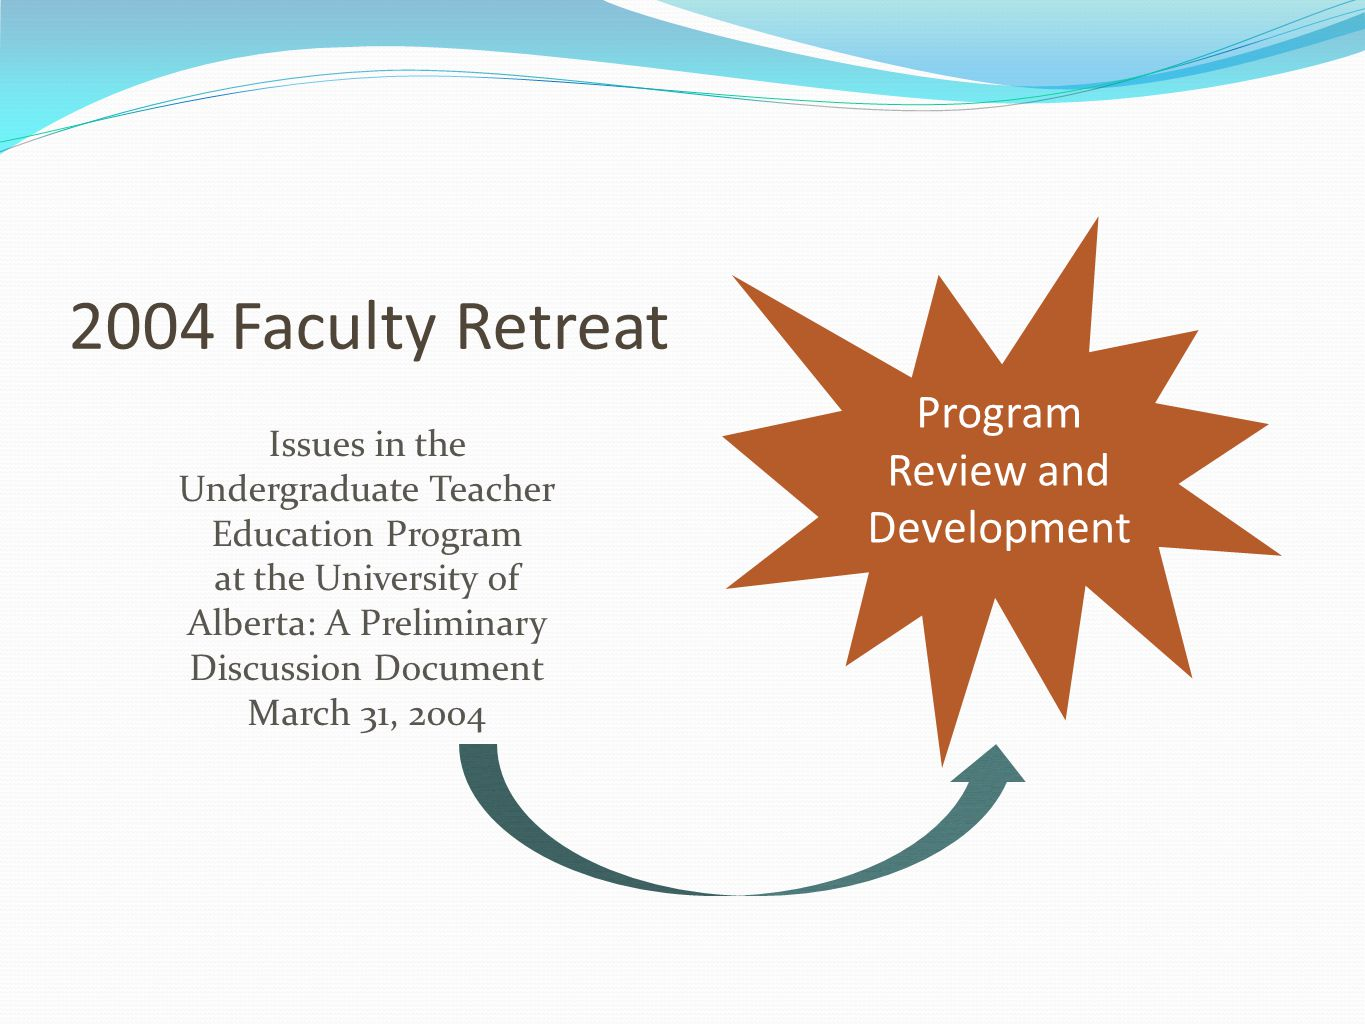 2004 Faculty Retreat Issues in the Undergraduate Teacher Education Program at the University of Alberta: A Preliminary Discussion Document March 31, 2004 Program Review and Development